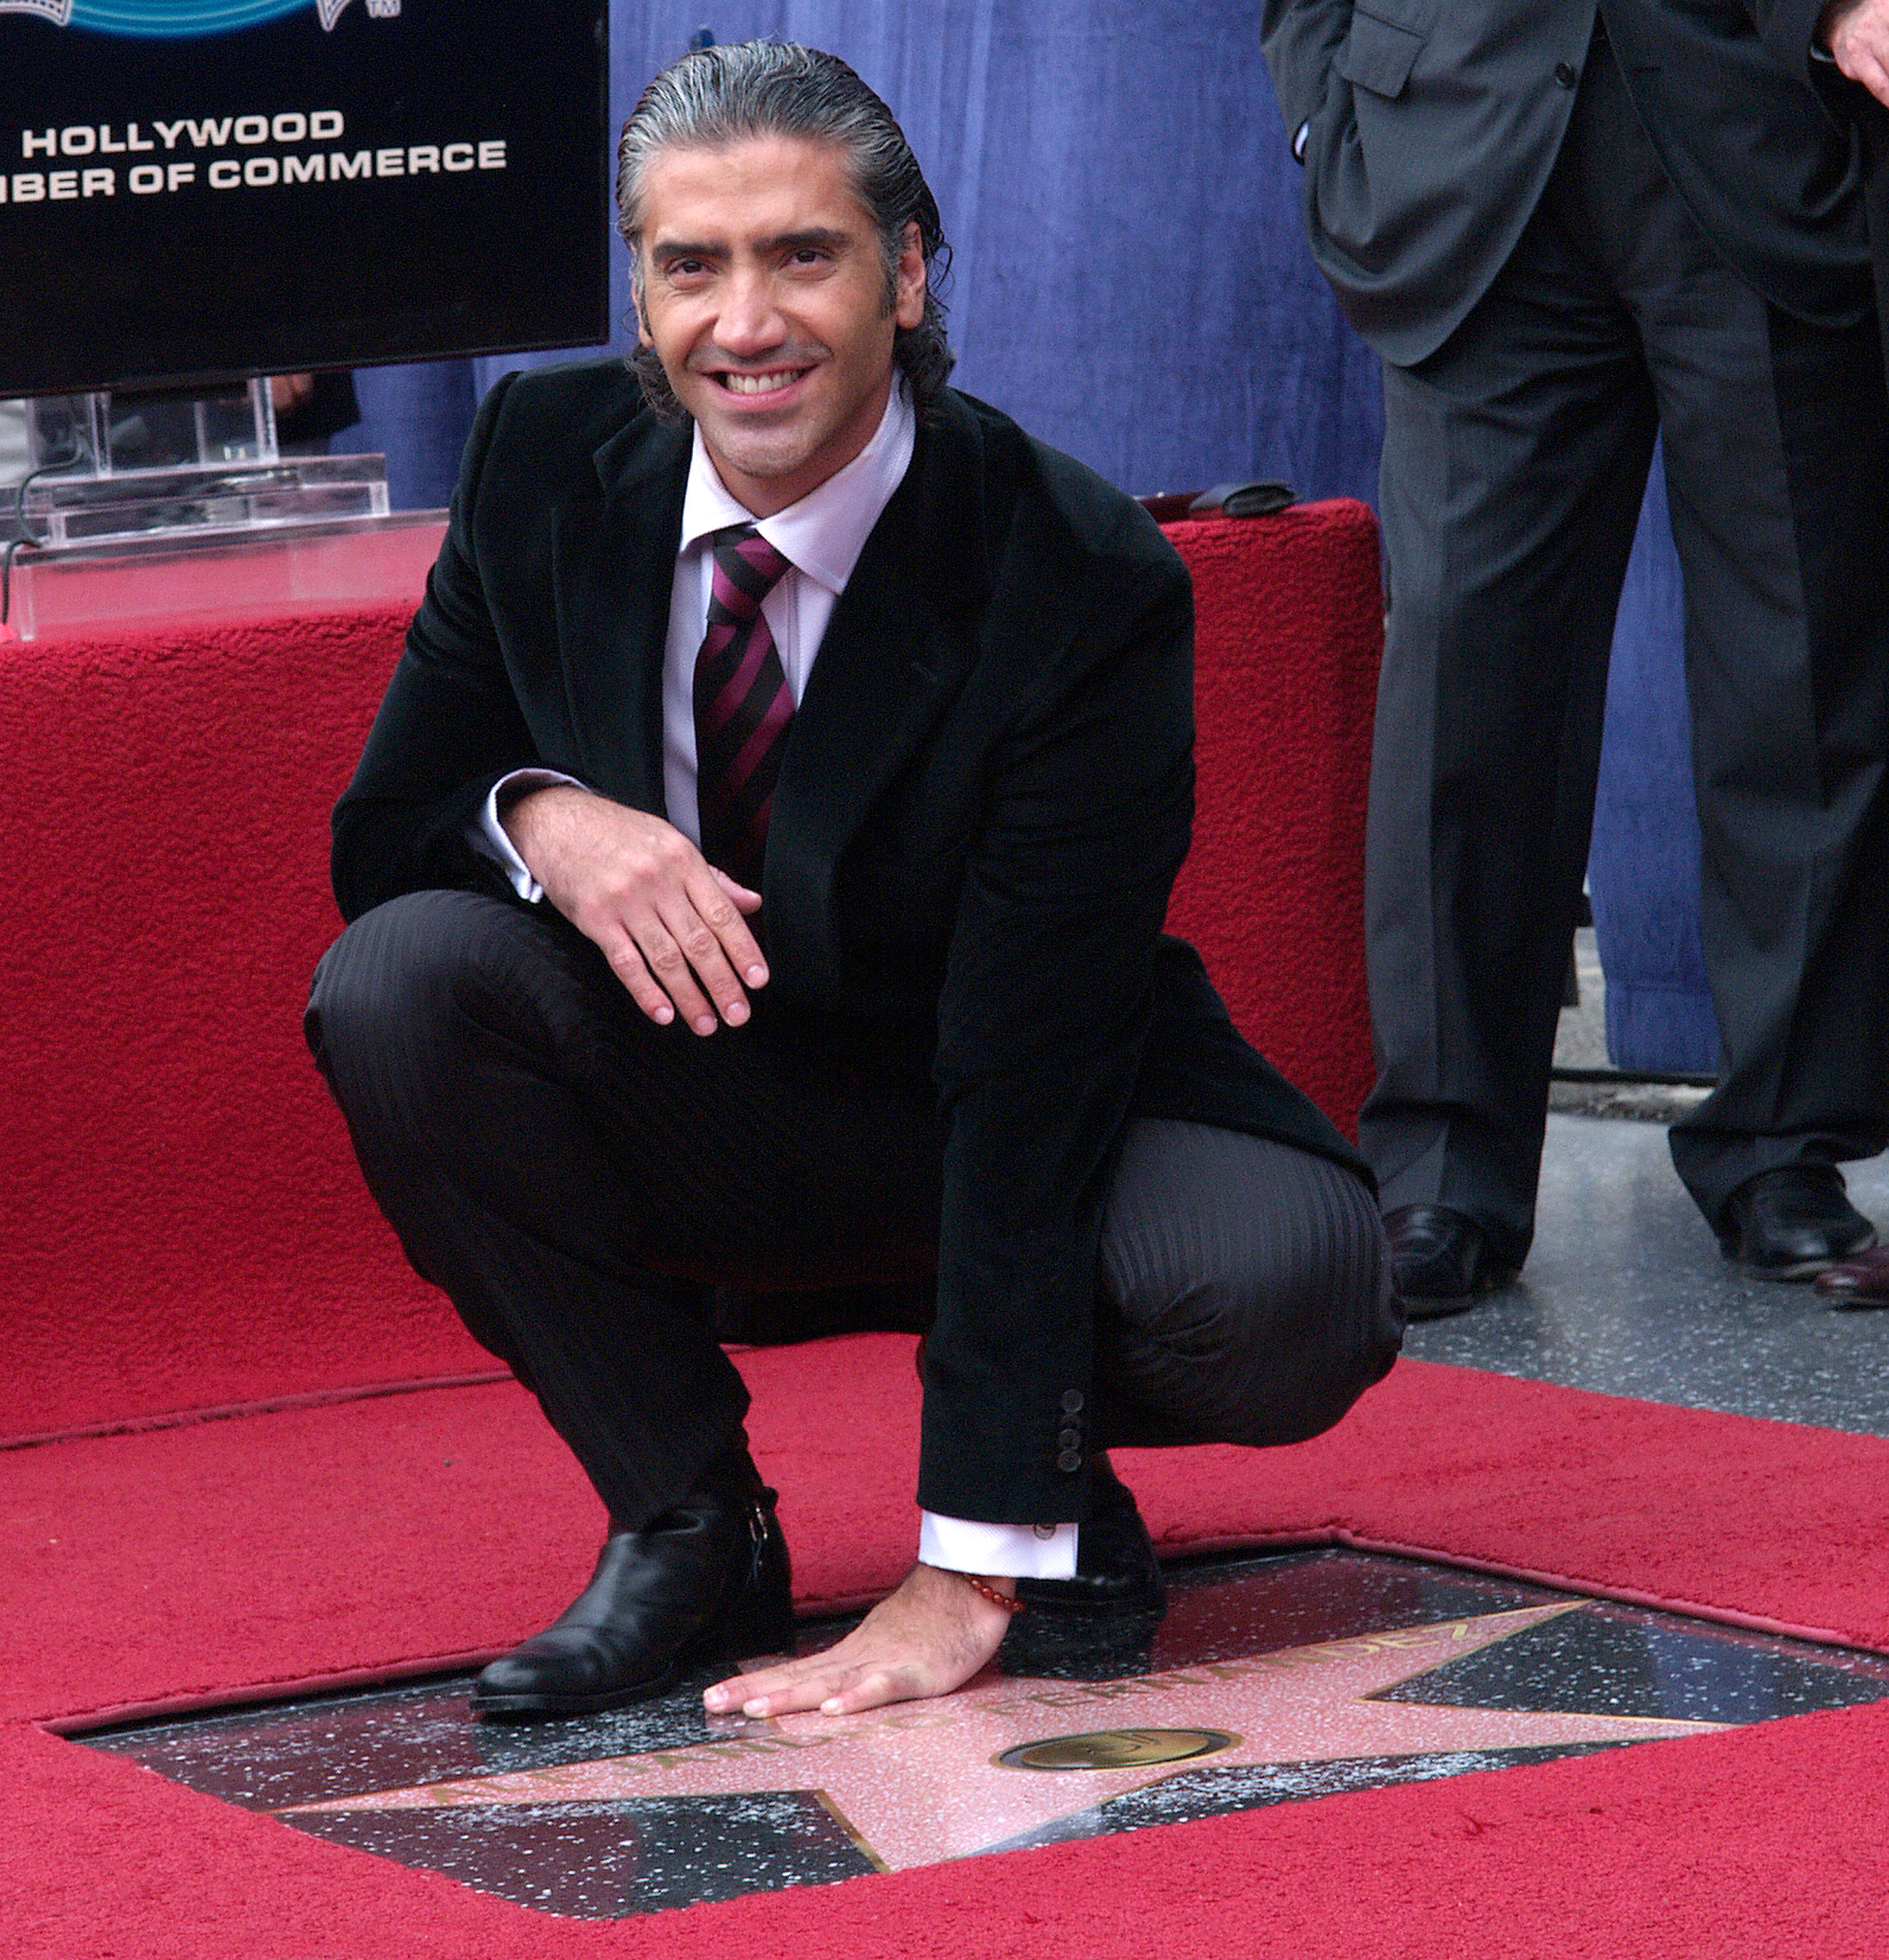 Alejandro Fernandez Honored With a Star on the Hollywood Walk of Fame for His Achievements in Music